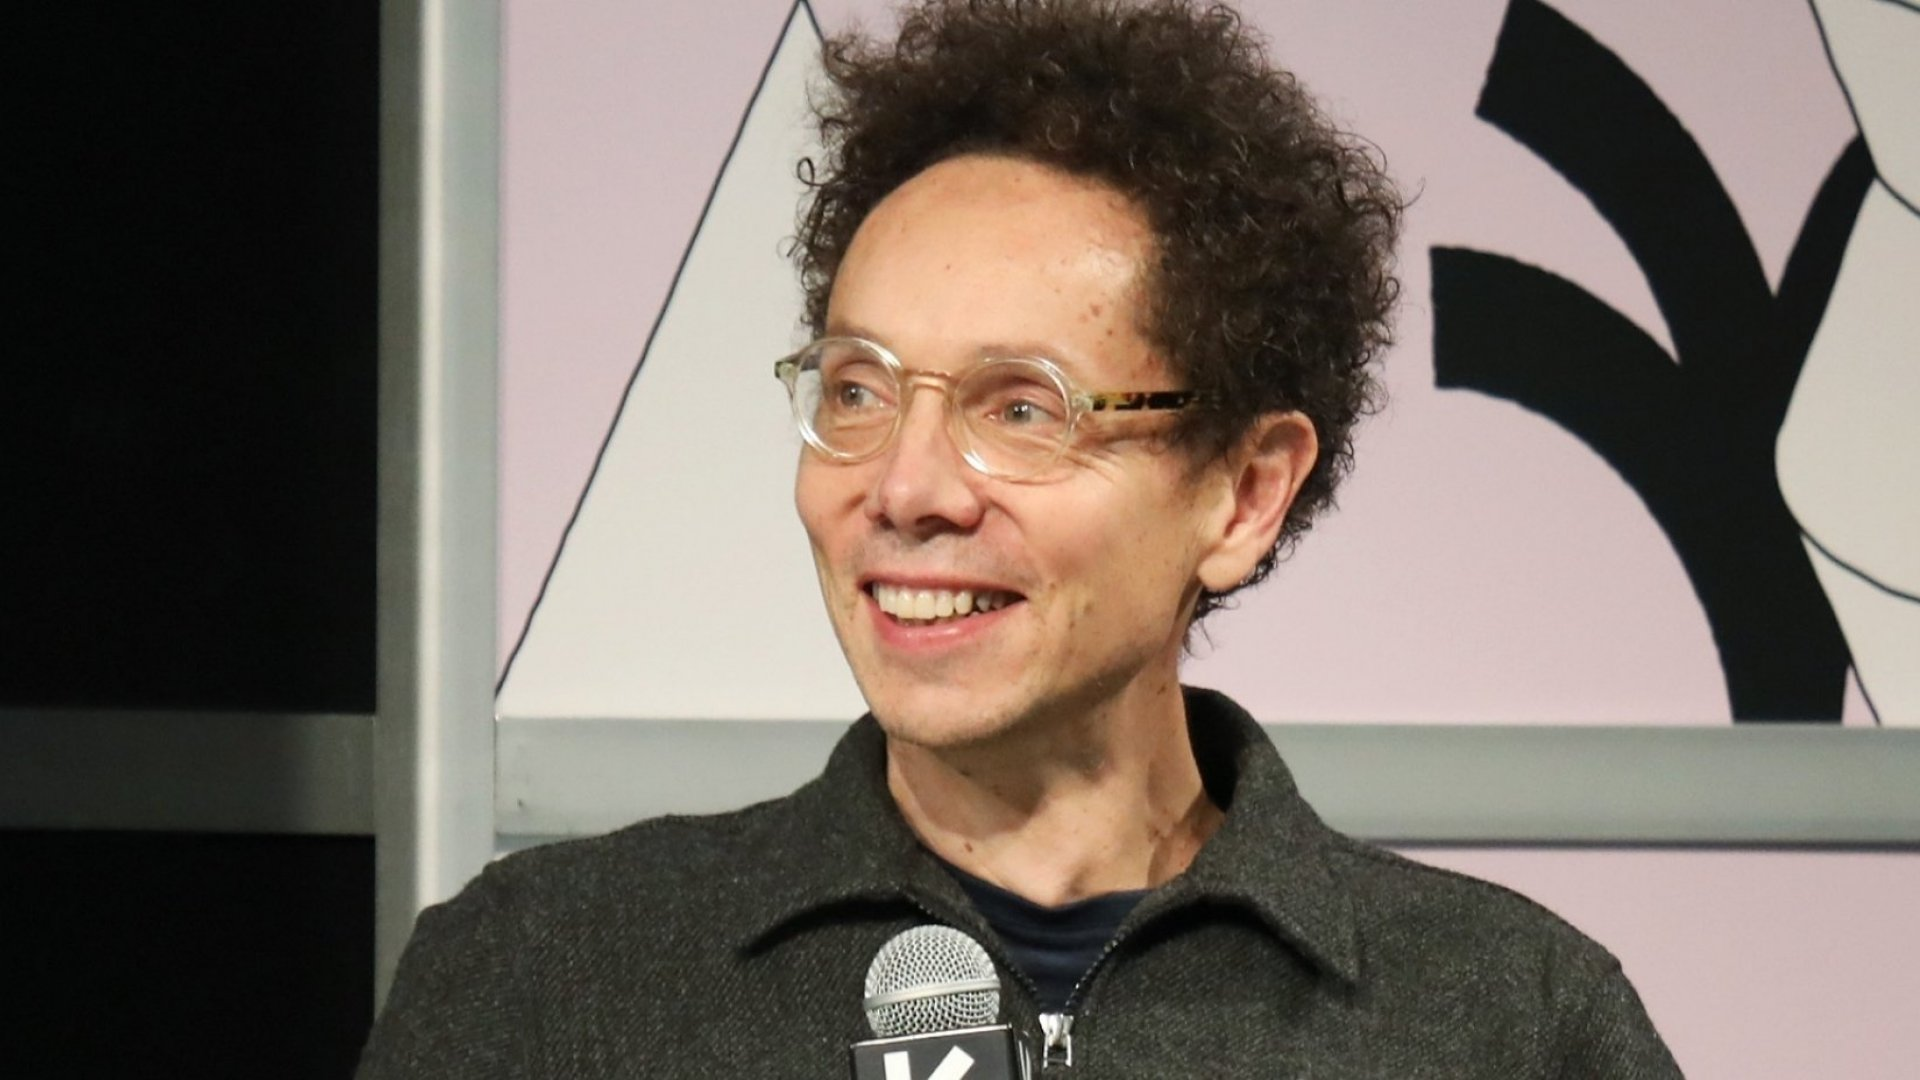 First Impressions Are Often Wrong. How Malcolm Gladwell Says We Can Improve Them